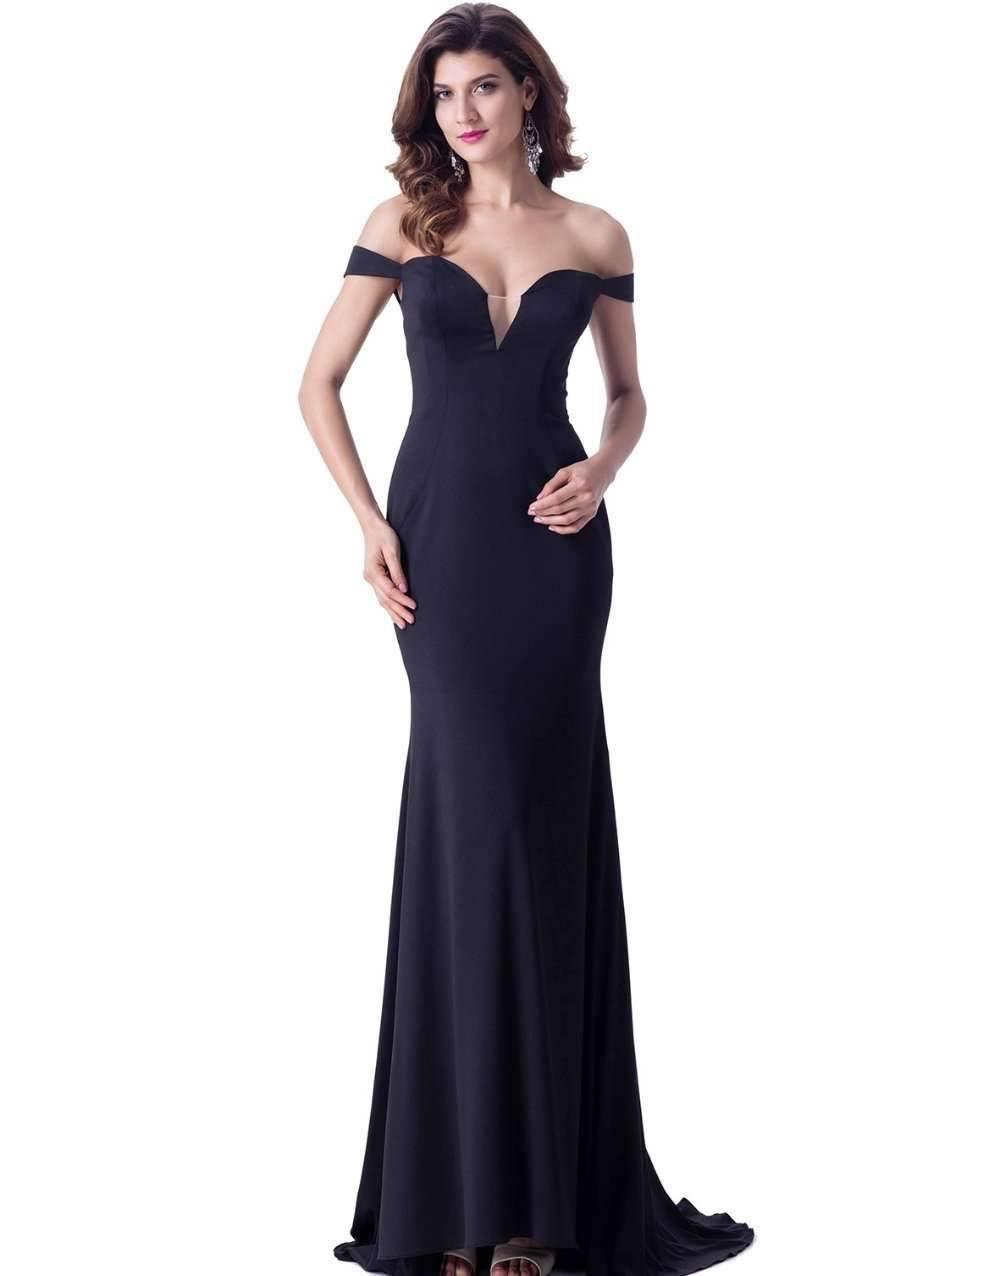 UK10 NAVY - CONSTANZA - Adore Bridal and Occasion Wear